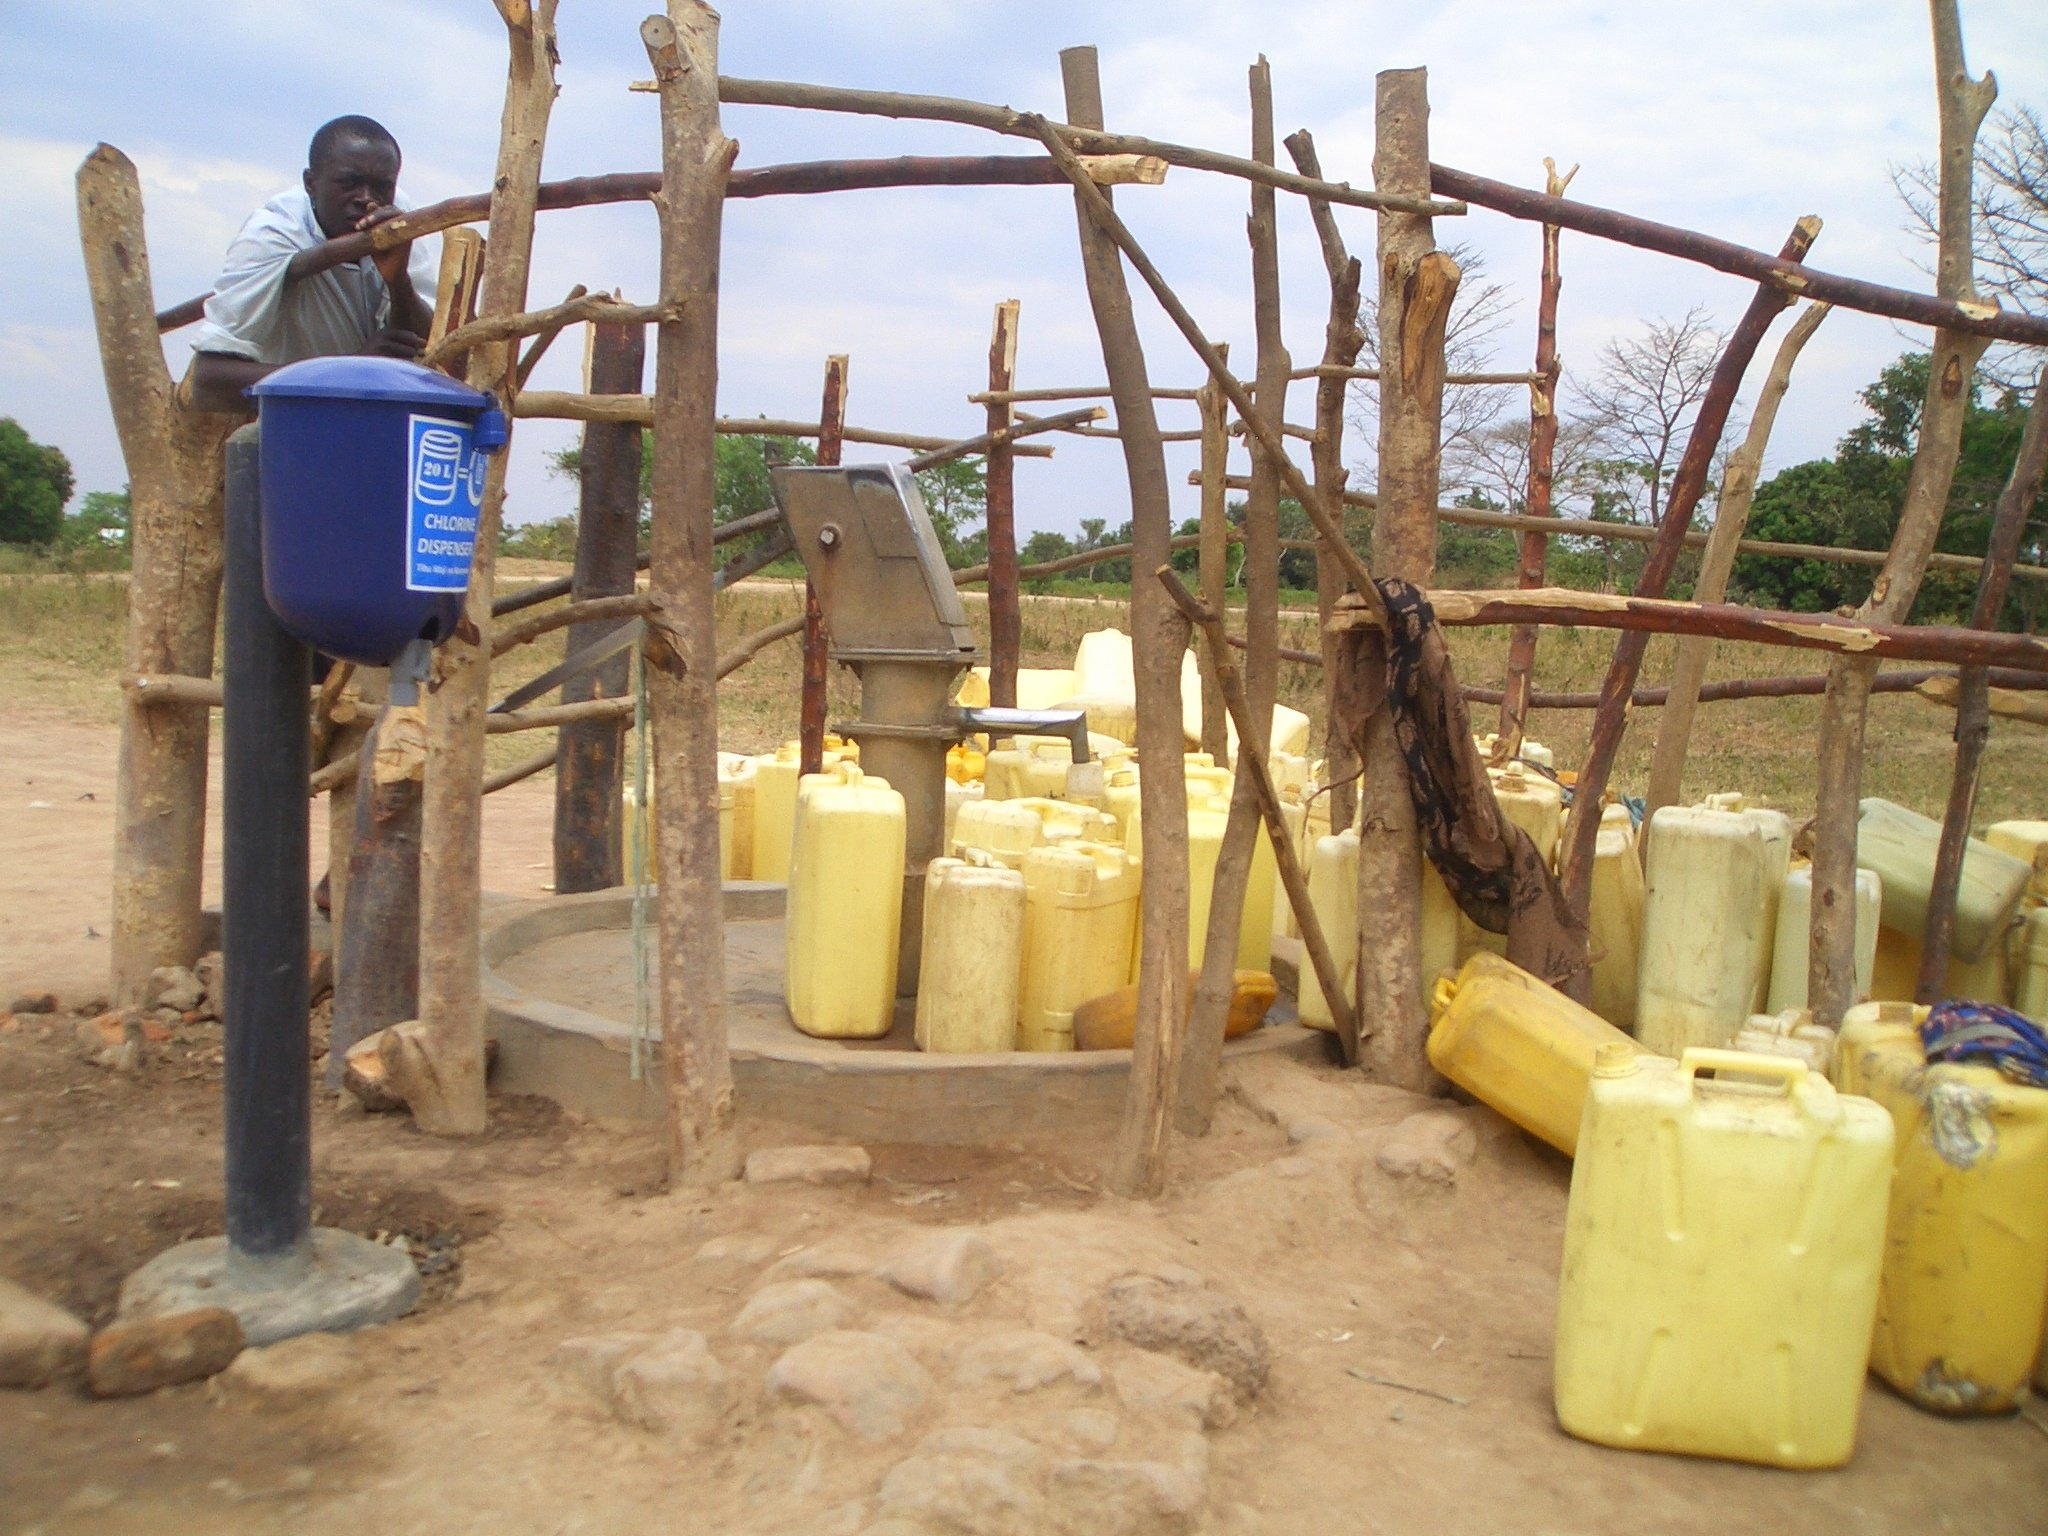 The Great Turnaround of 2015: Adoption Rates for Dispensers for Safe Water Highest Ever